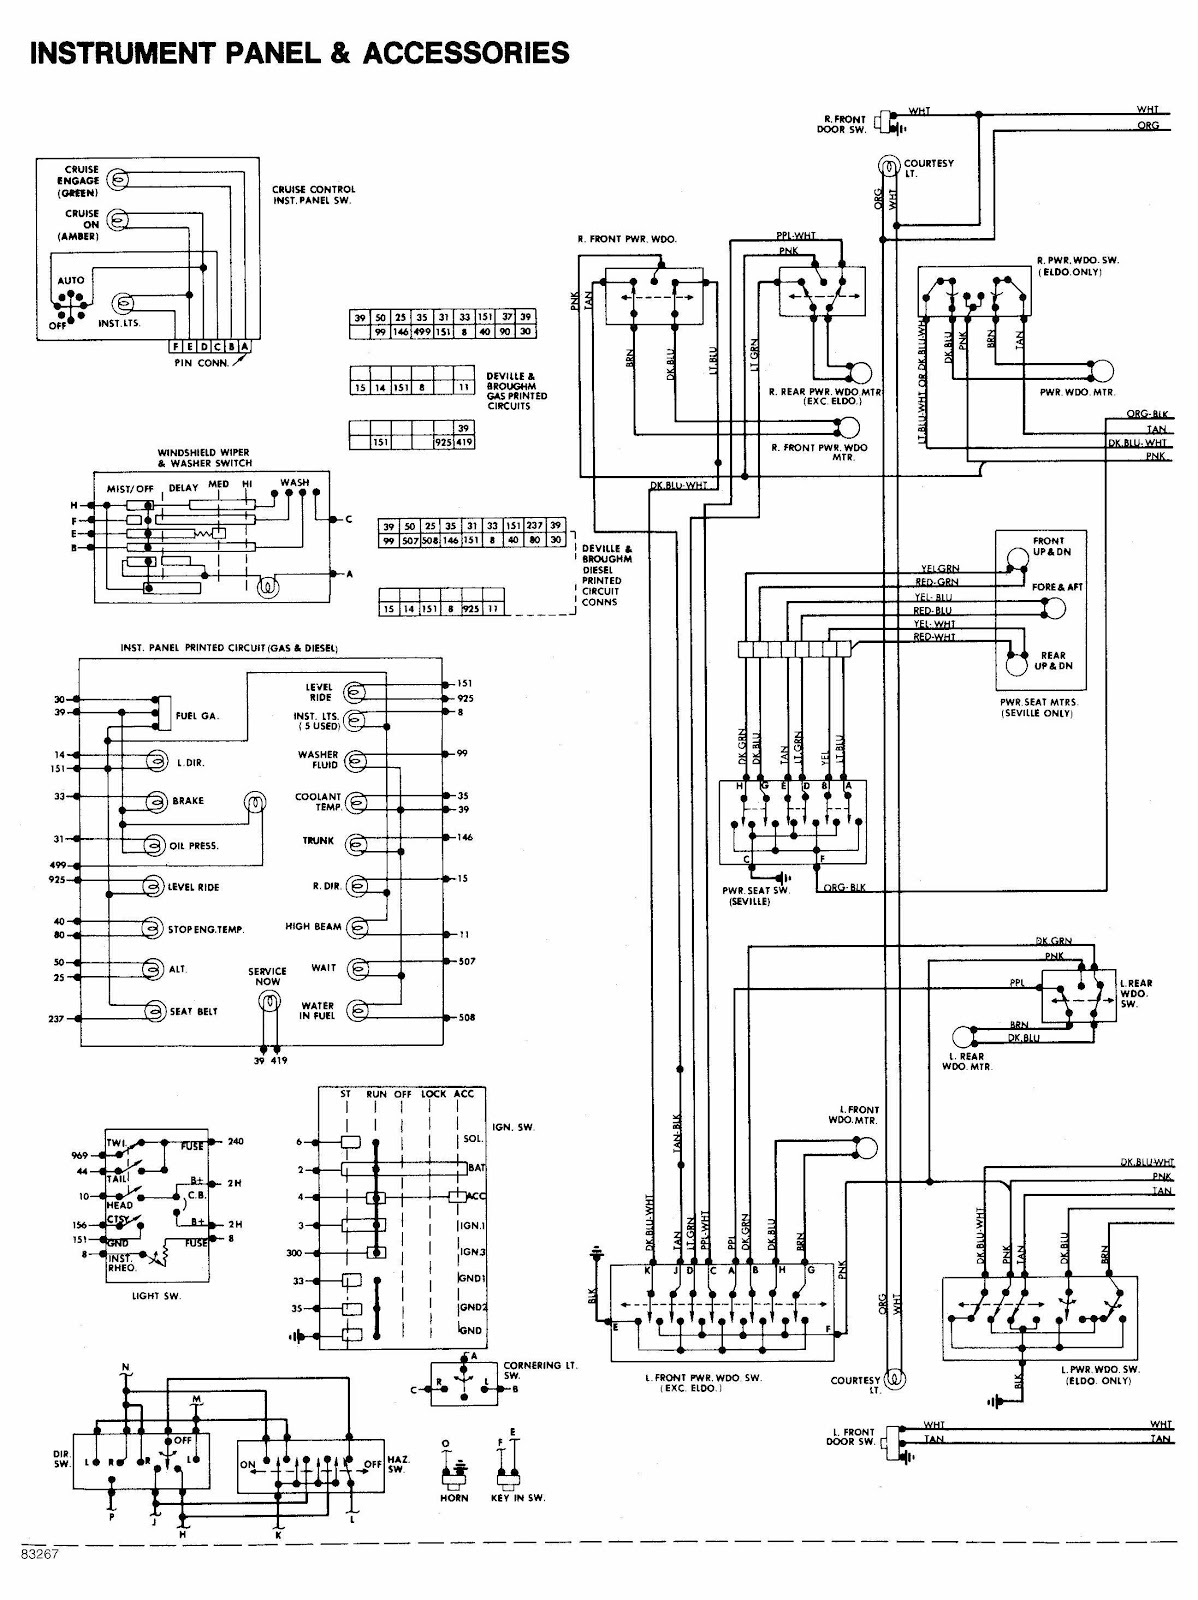 Cadillac Deville Instrument Panel And Accessories Wiring Diagram in addition Camaro  r Mirrors also  additionally The Blue Turd Ford Taurus With A Turbo L V as well D Rh Blend Door Actuator Beating Me Img. on ford taurus wiring harness